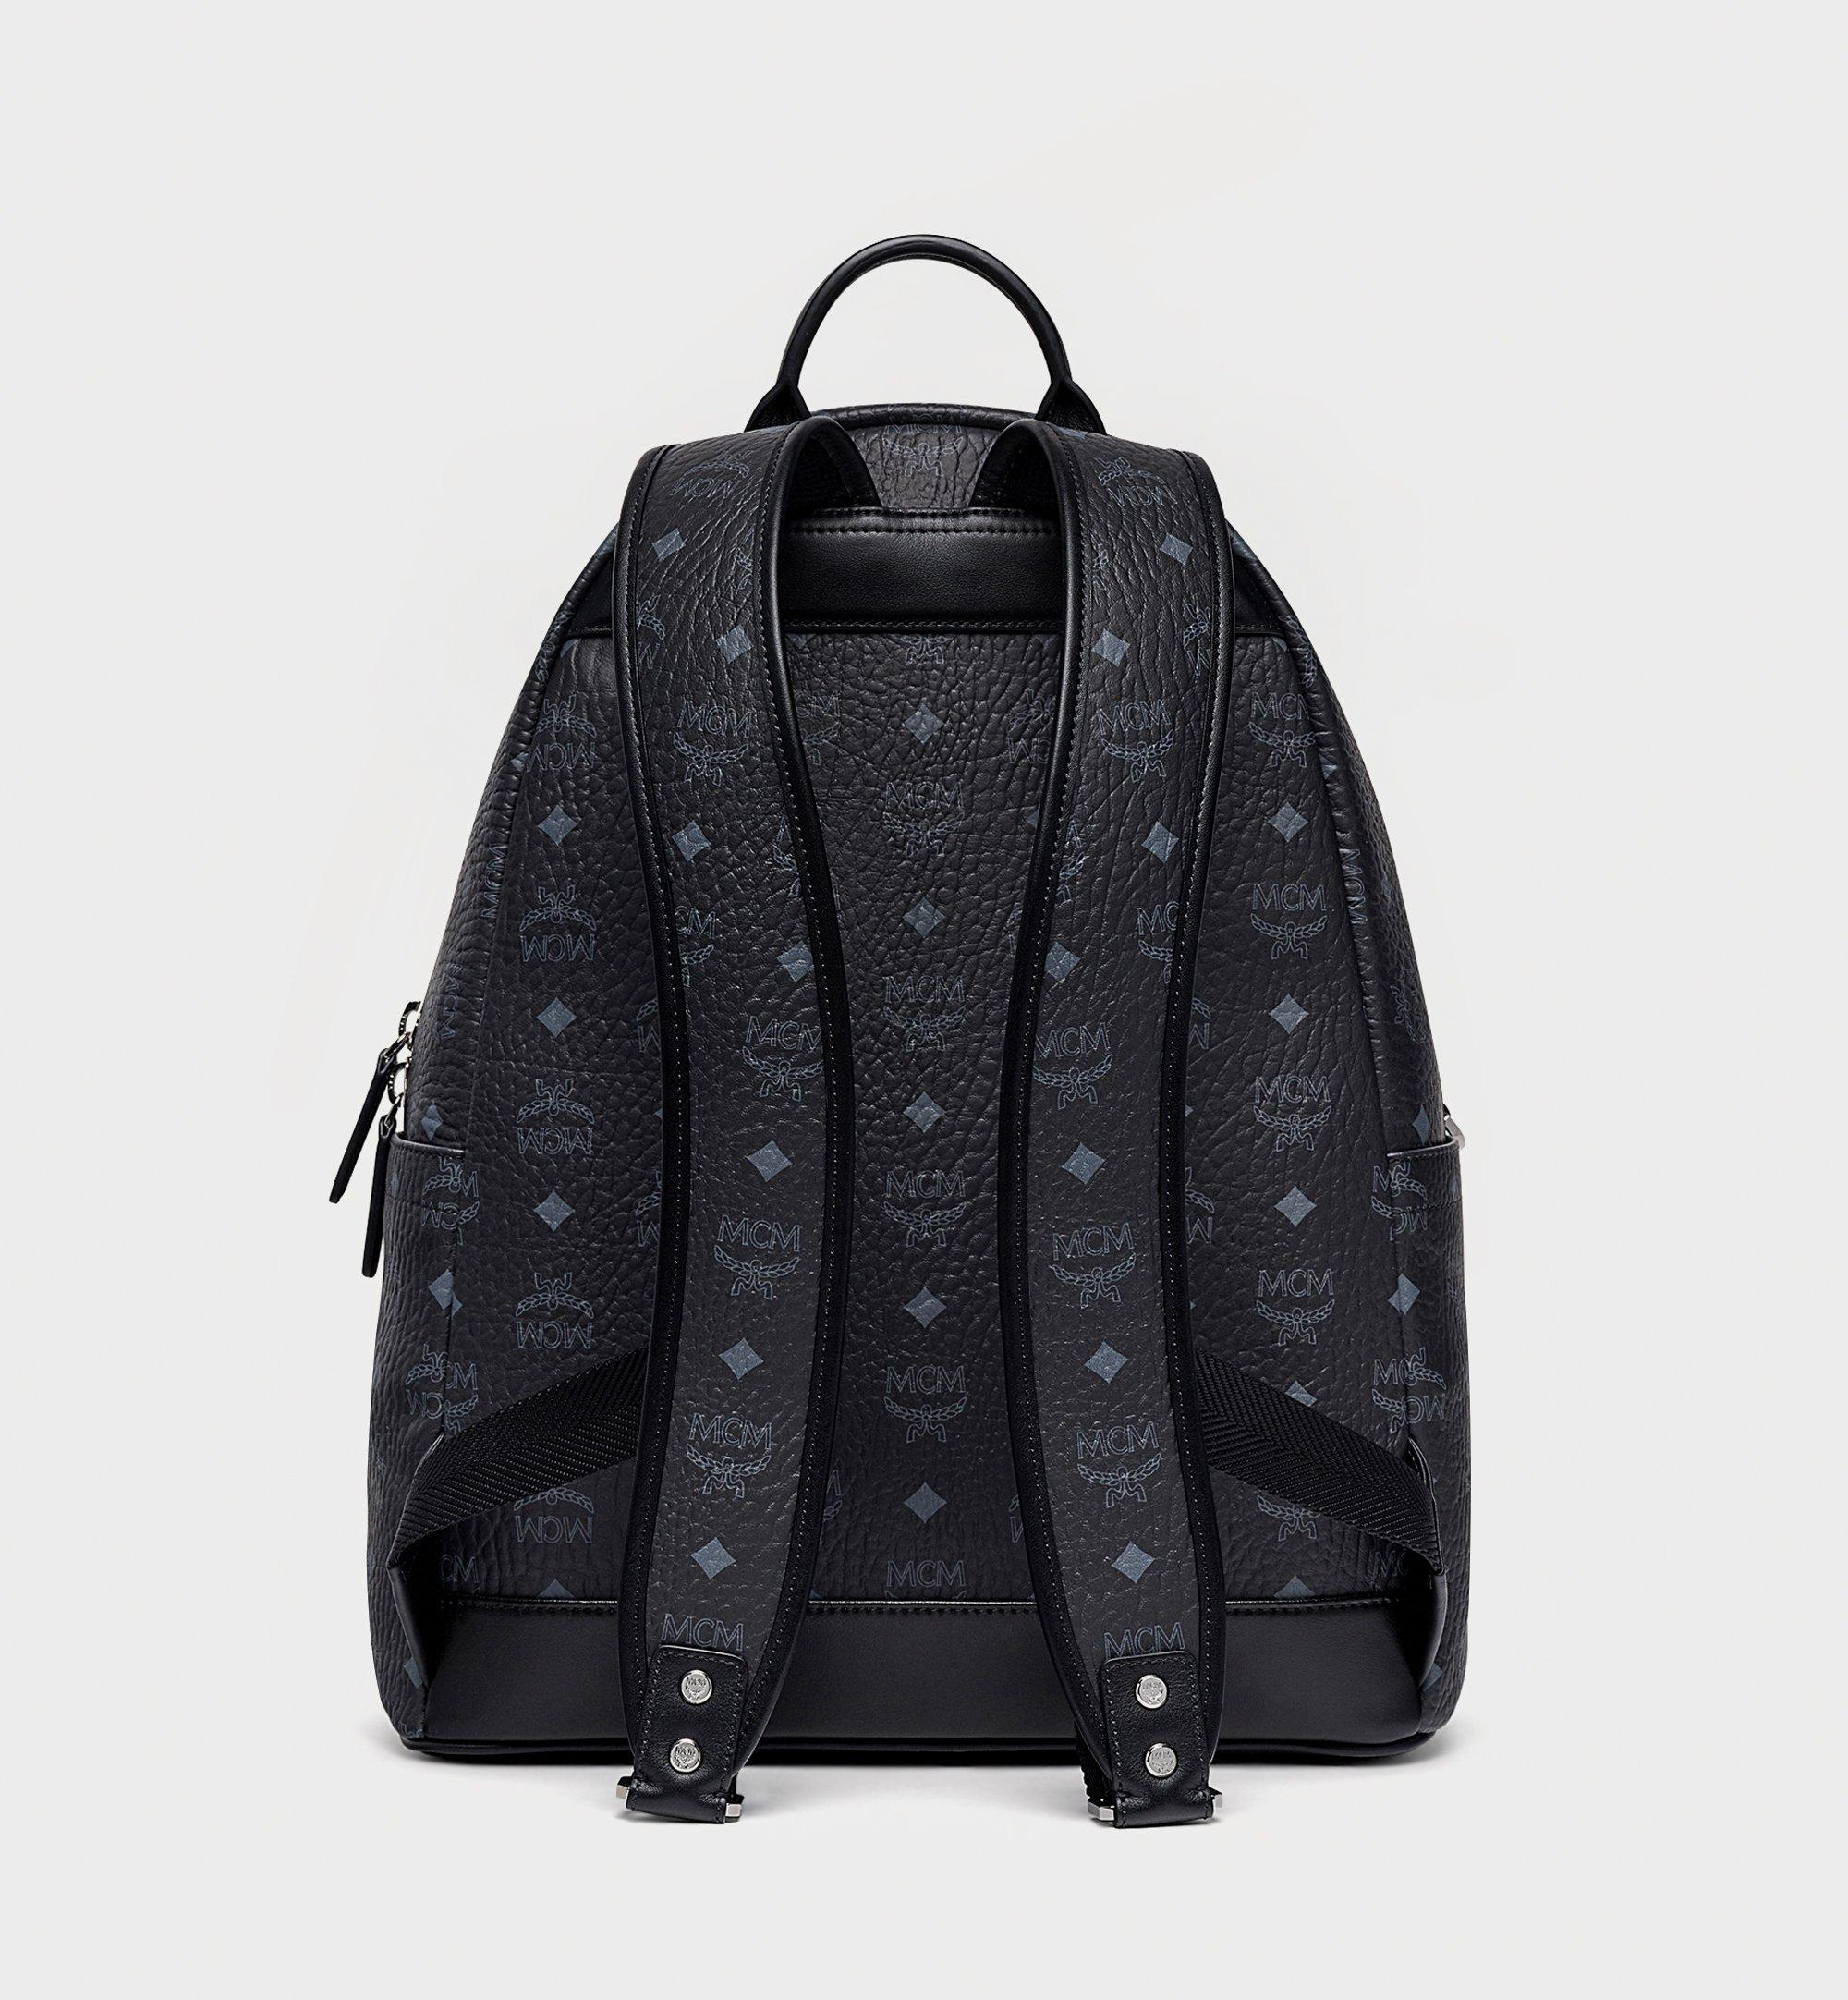 MCM Stark Backpack in Geo Graffiti Visetos Black MMKBSVE04BK001 Alternate View 3